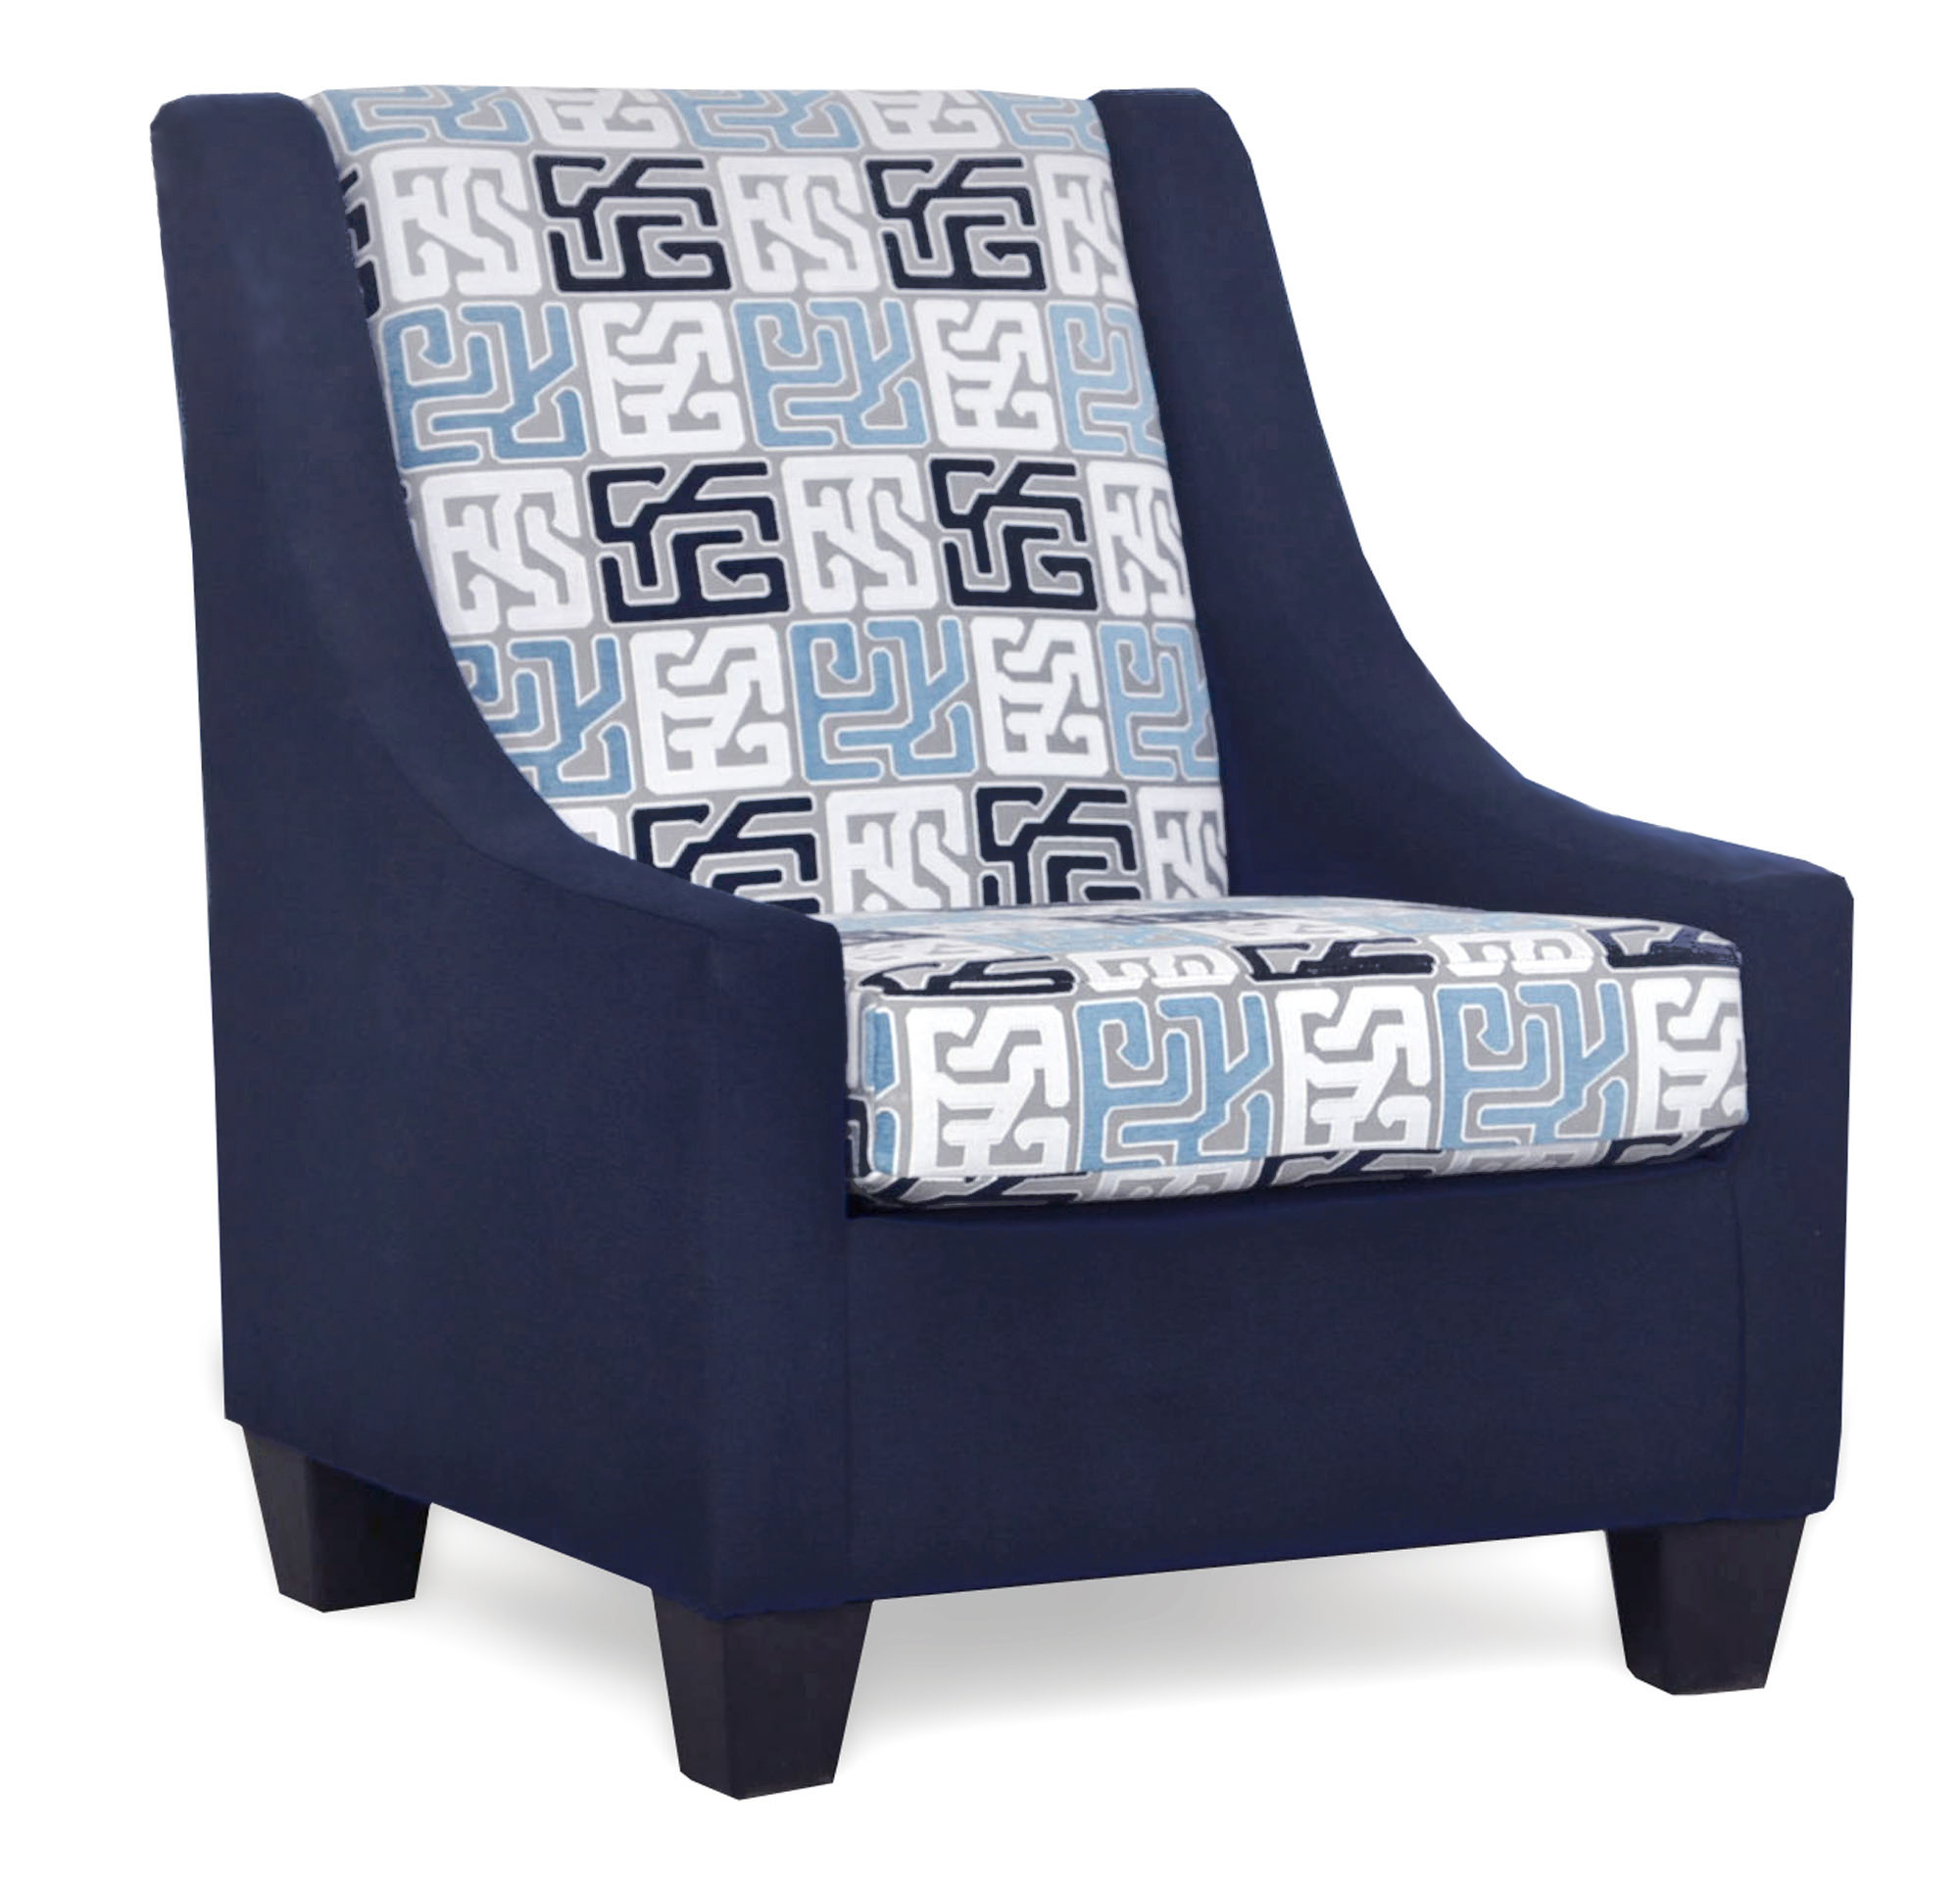 390 Luna Midnight Accent Chair